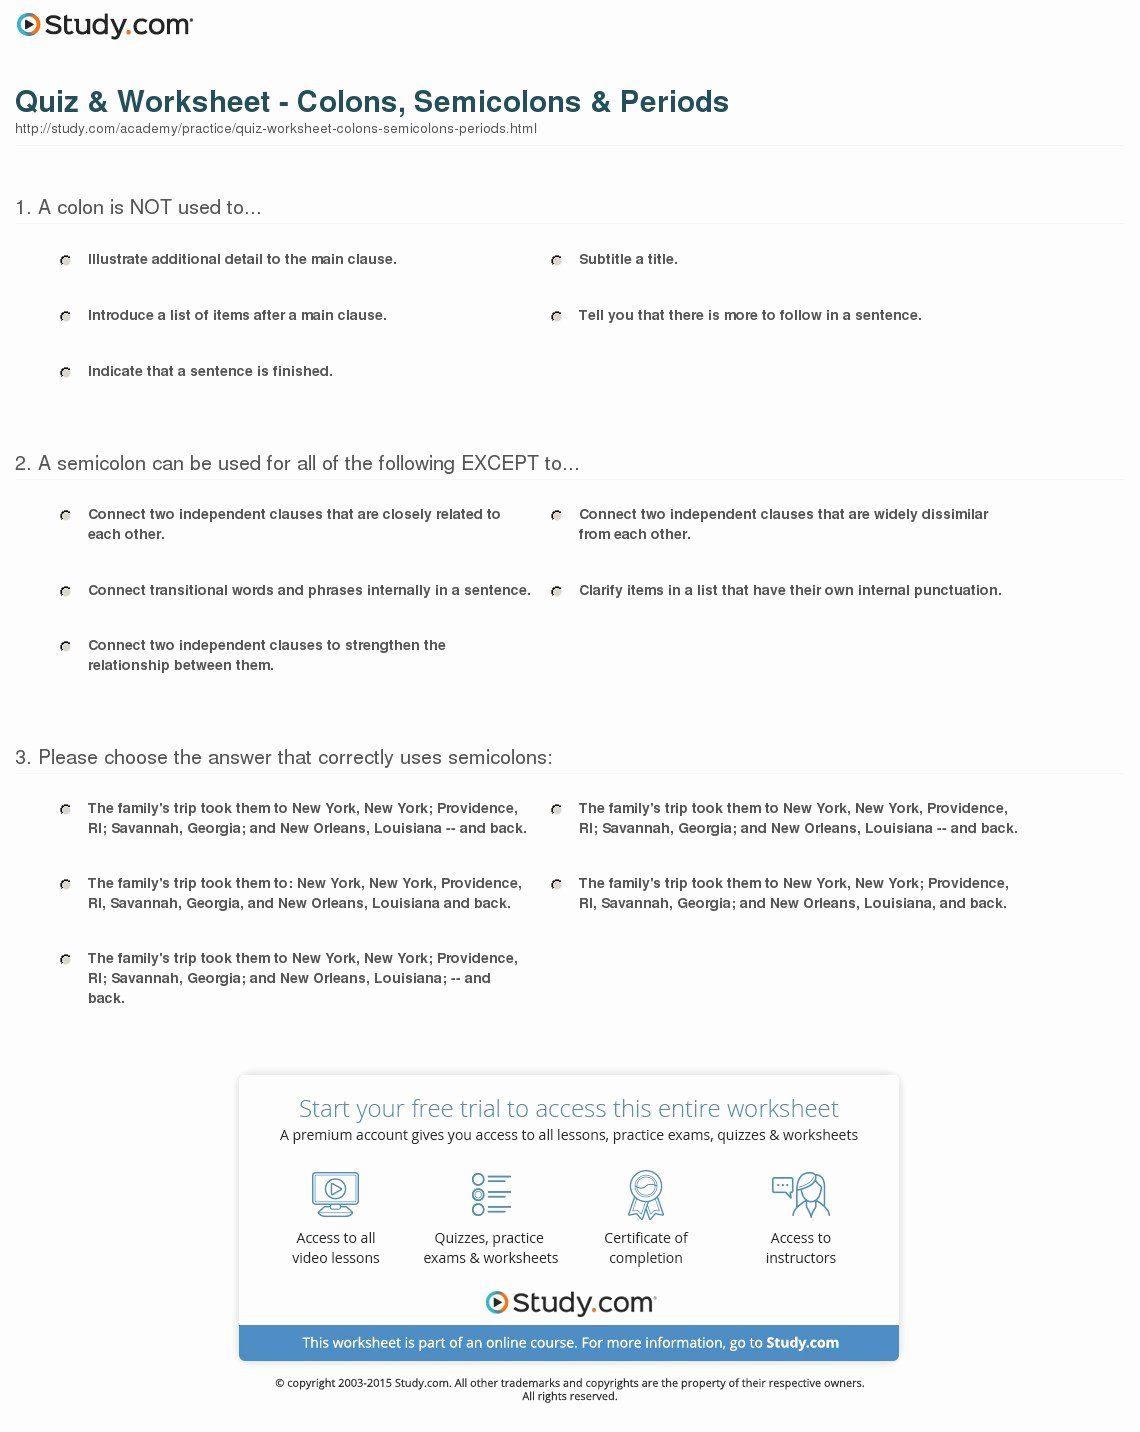 Semicolons and Colons Worksheet Awesome Quiz & Worksheet Colons Semicolons & Periods